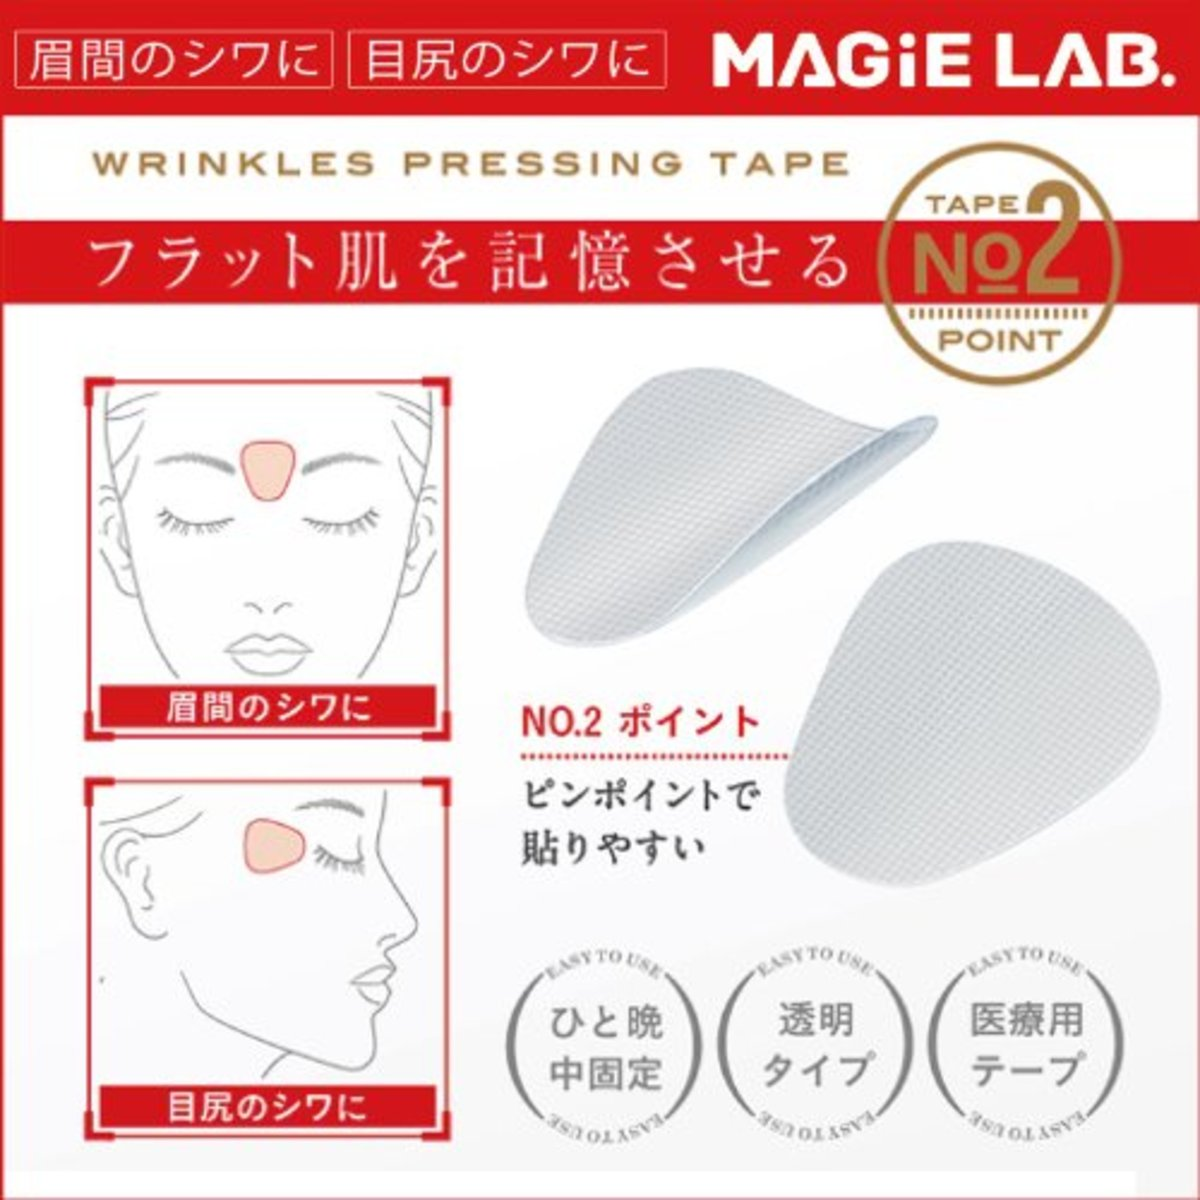 MAGiE LAB face line shaping tape No.2 - Medium